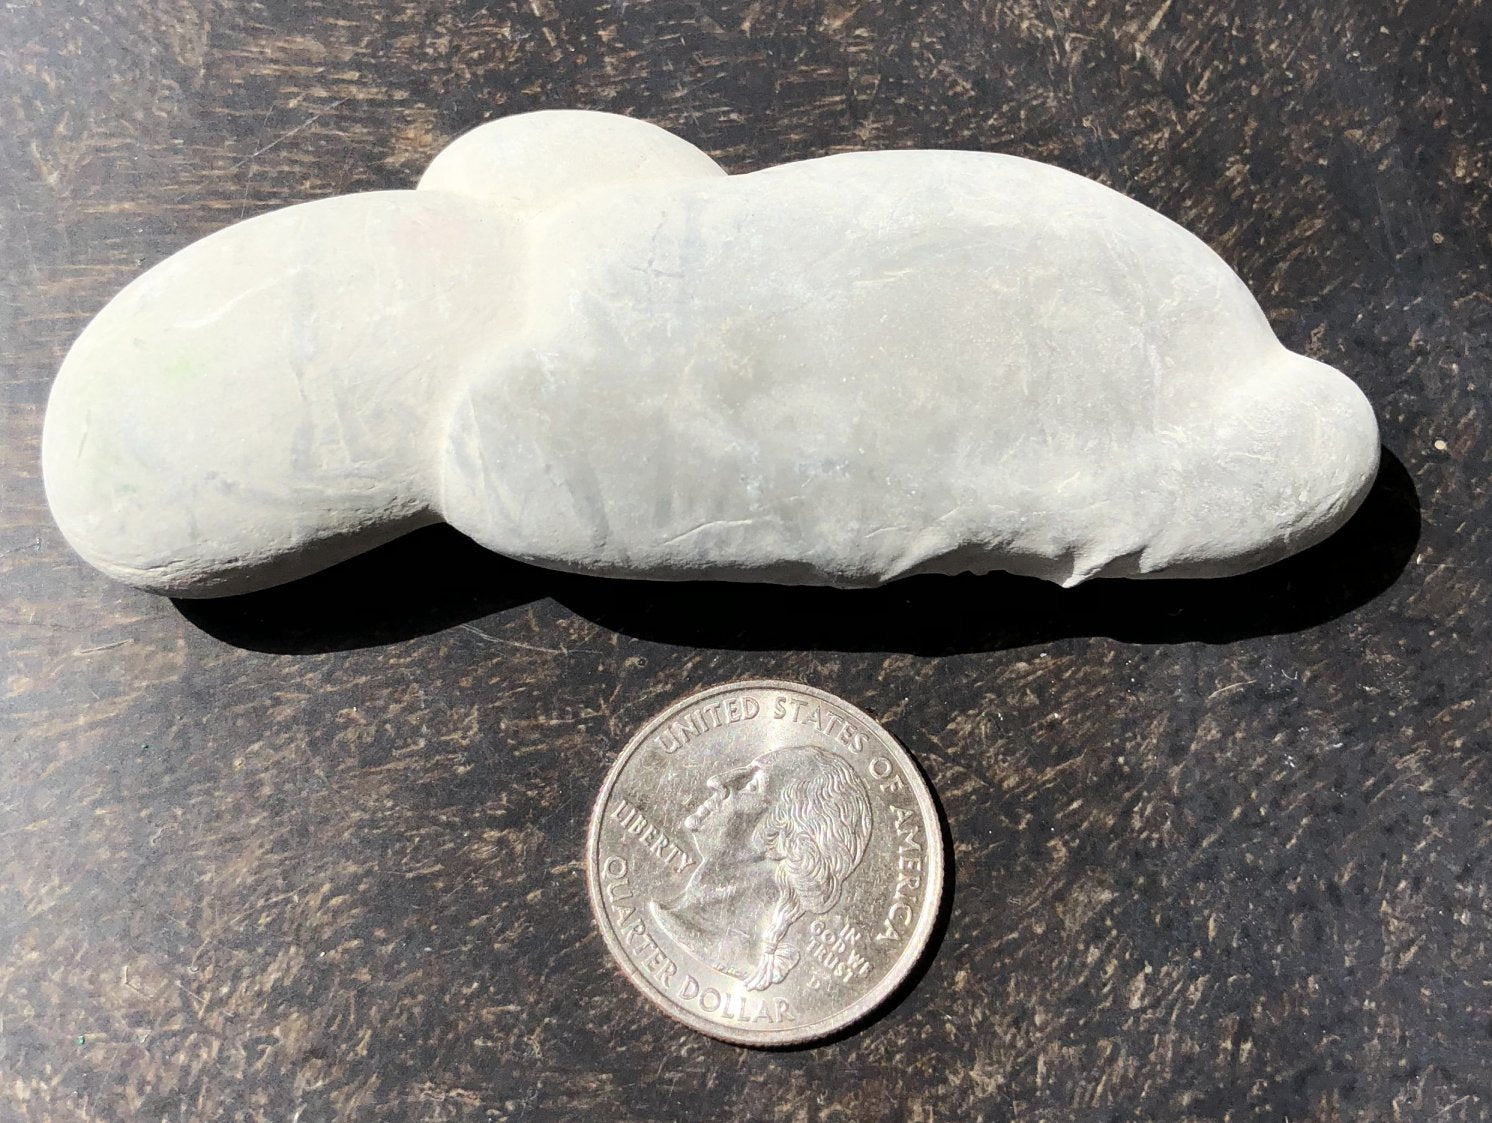 FAIRY STONE / GODDESS STONE Specimen From Harricana River, QC!